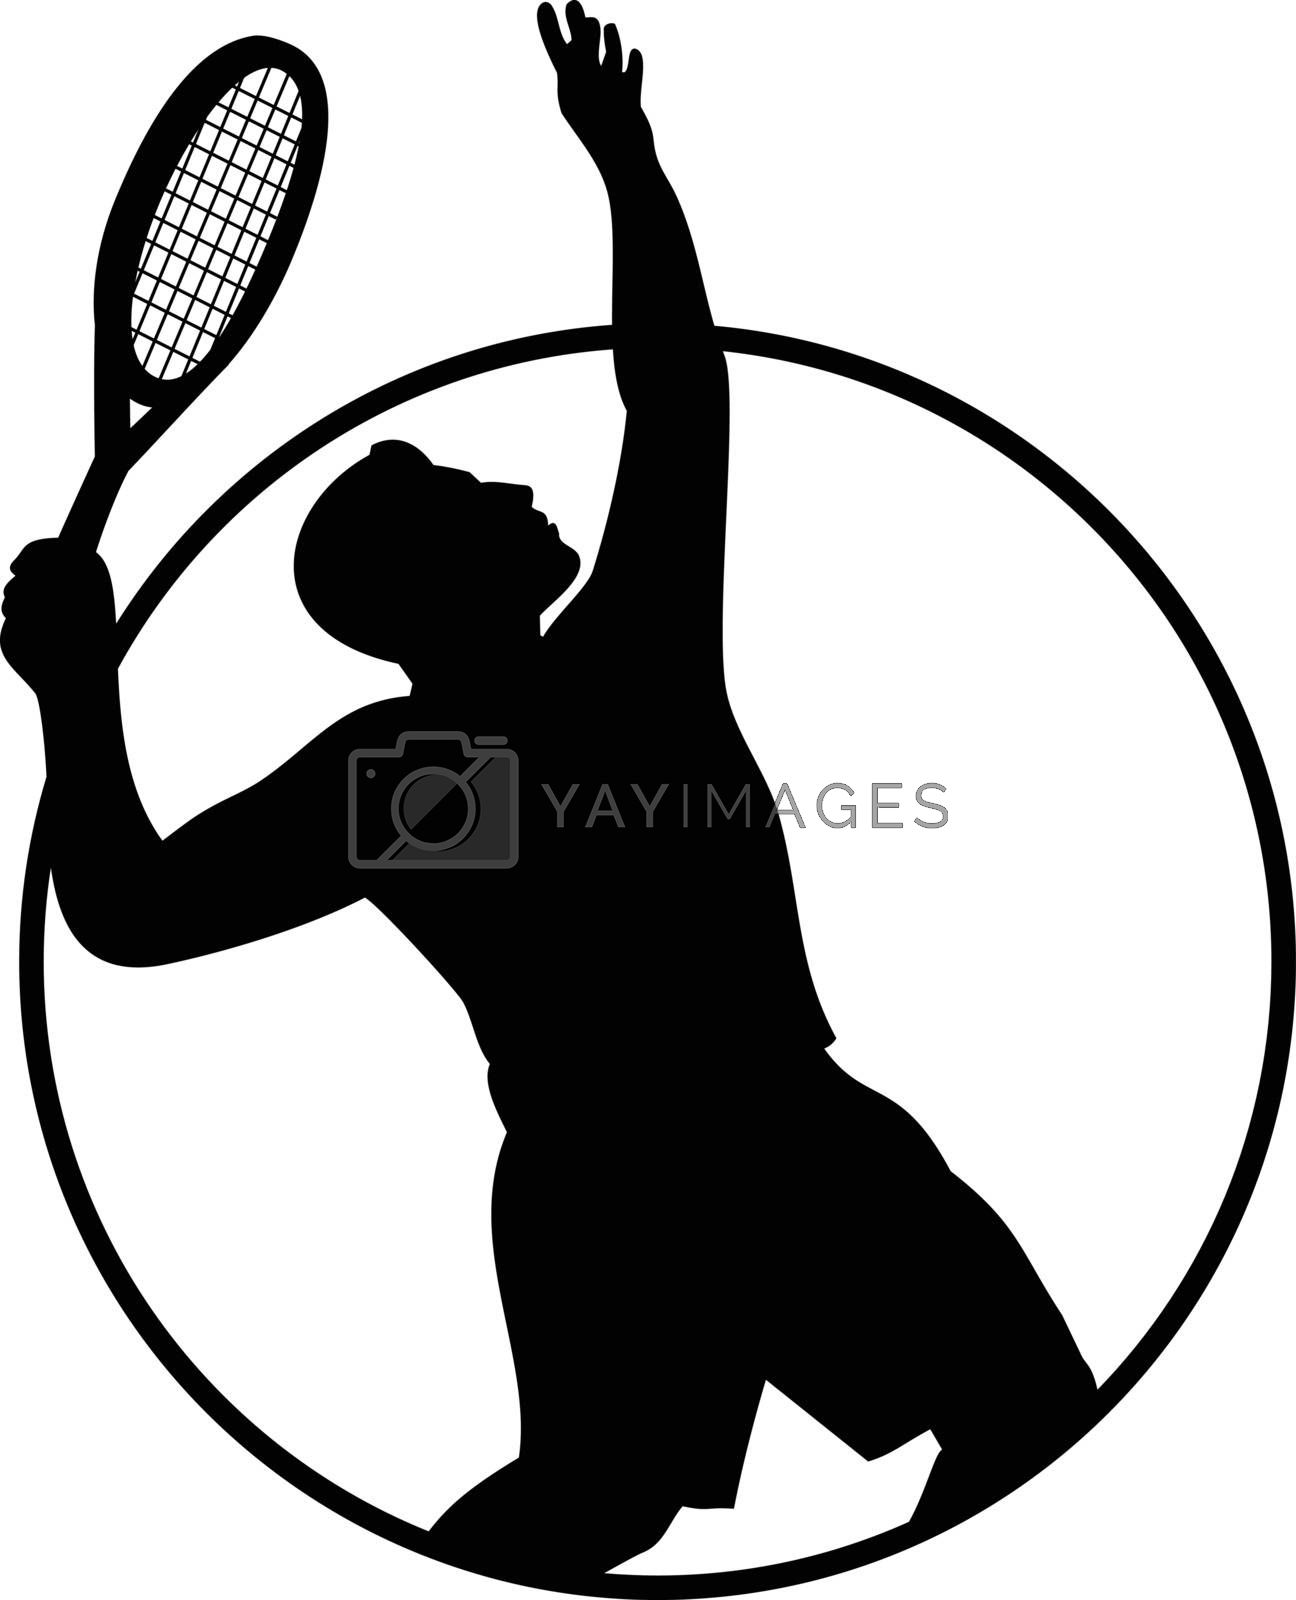 Retro style black and white illustration of a silhouette of a male tennis player with racquet or racket serving viewed from side set inside circle on isolated background.